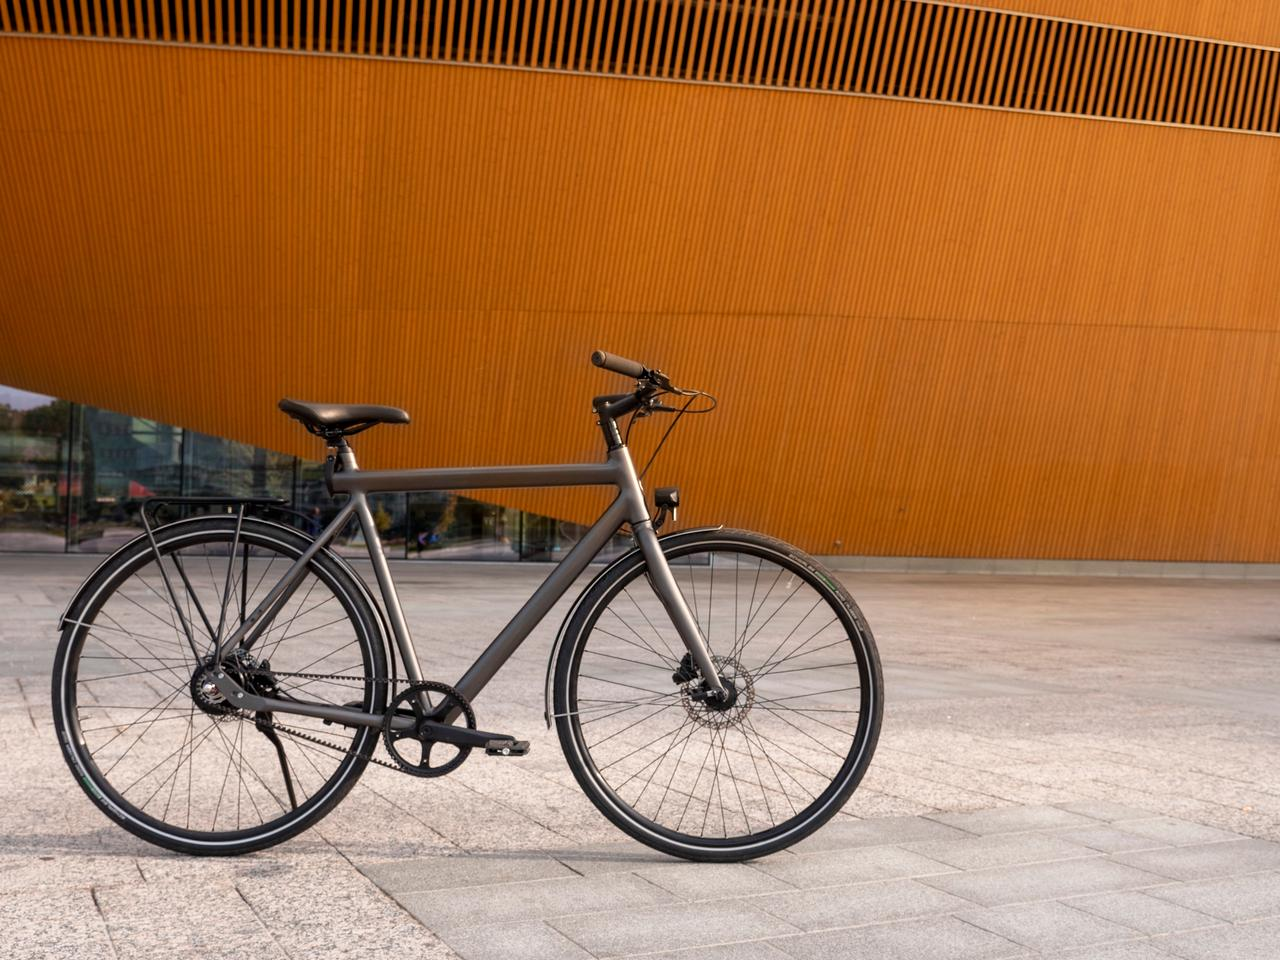 The standard Equal bike comes with a chain drive, but a Gates CDX Carbon Drive can be optioned in